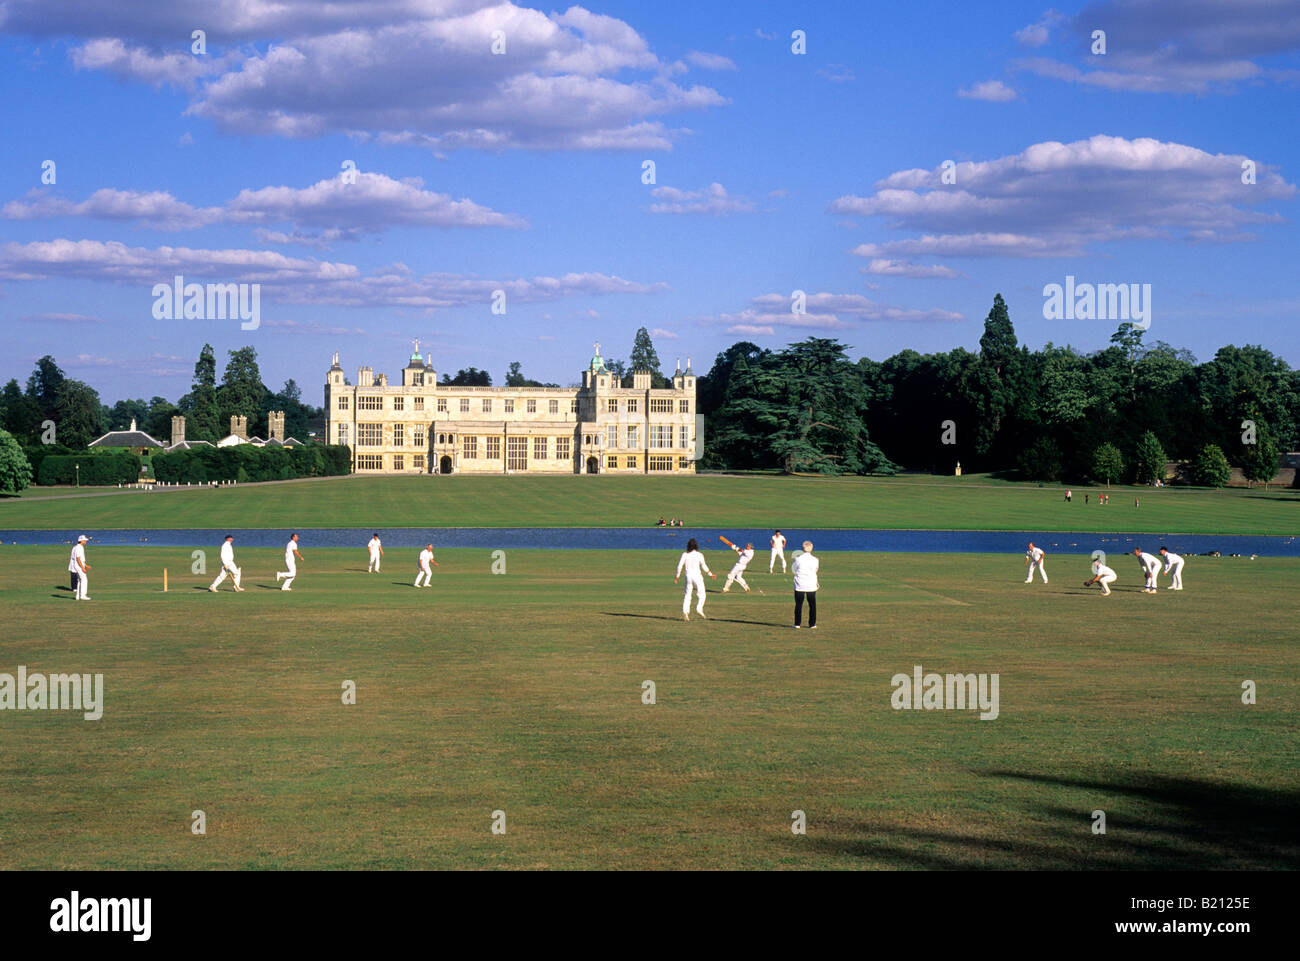 cricket match audley end house essex traditional quintessential cricket match audley end house essex traditional quintessential english scene view cricketers playing stately home east anglia